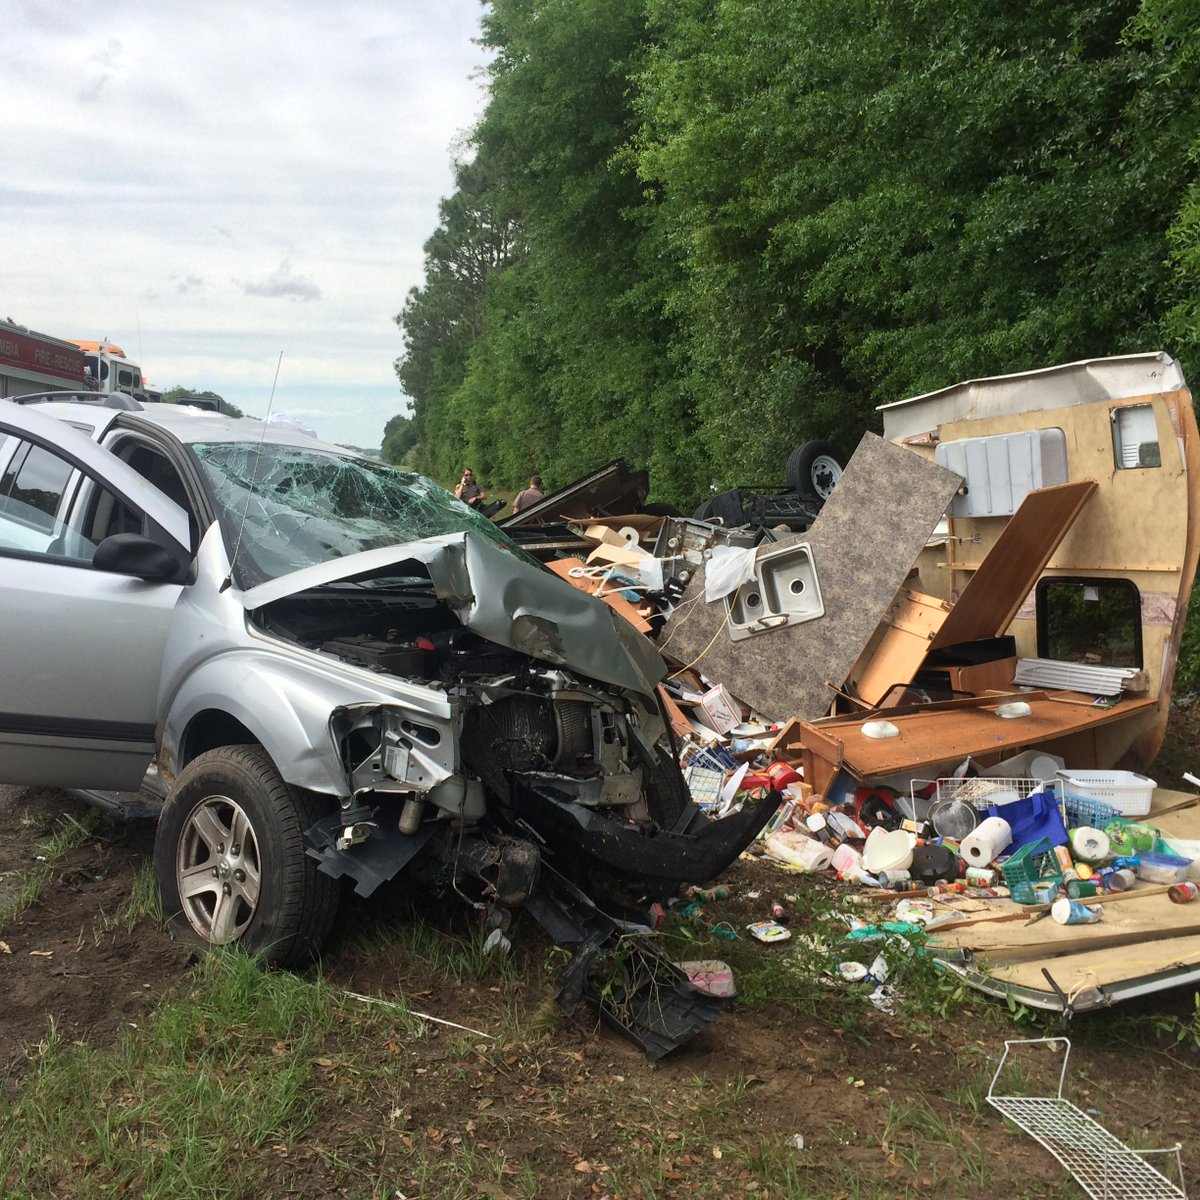 Suv Towing A Travel Trailer Flips On I Causing A Road Block In